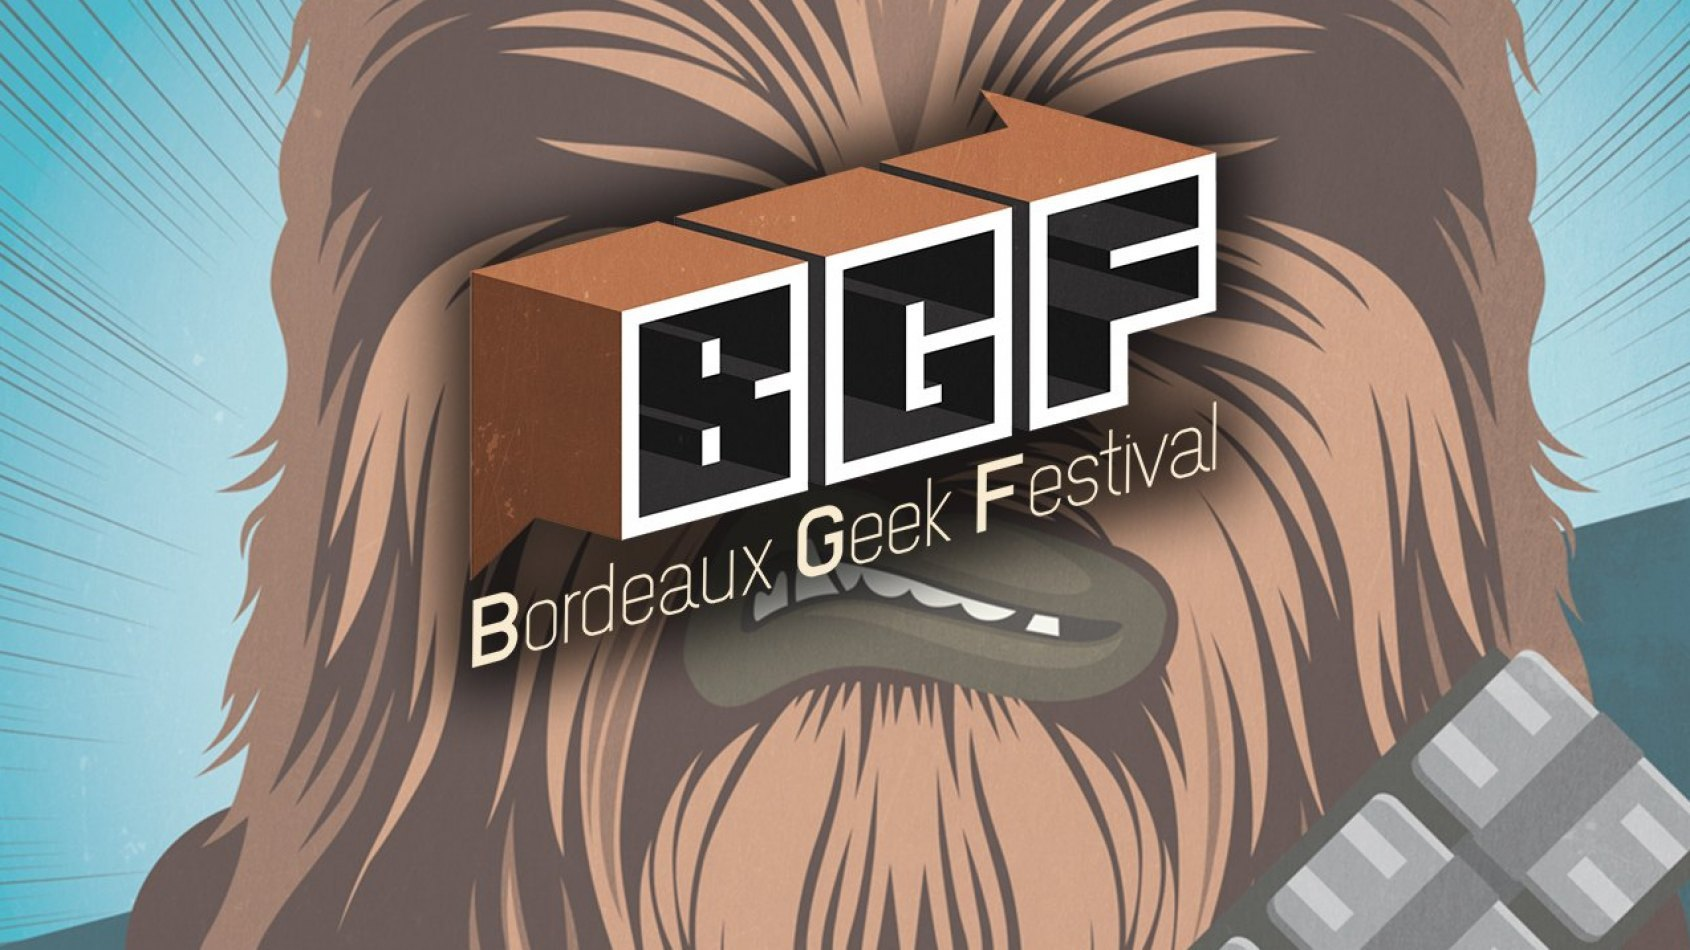 Le Bordeaux Geek Festival 2016